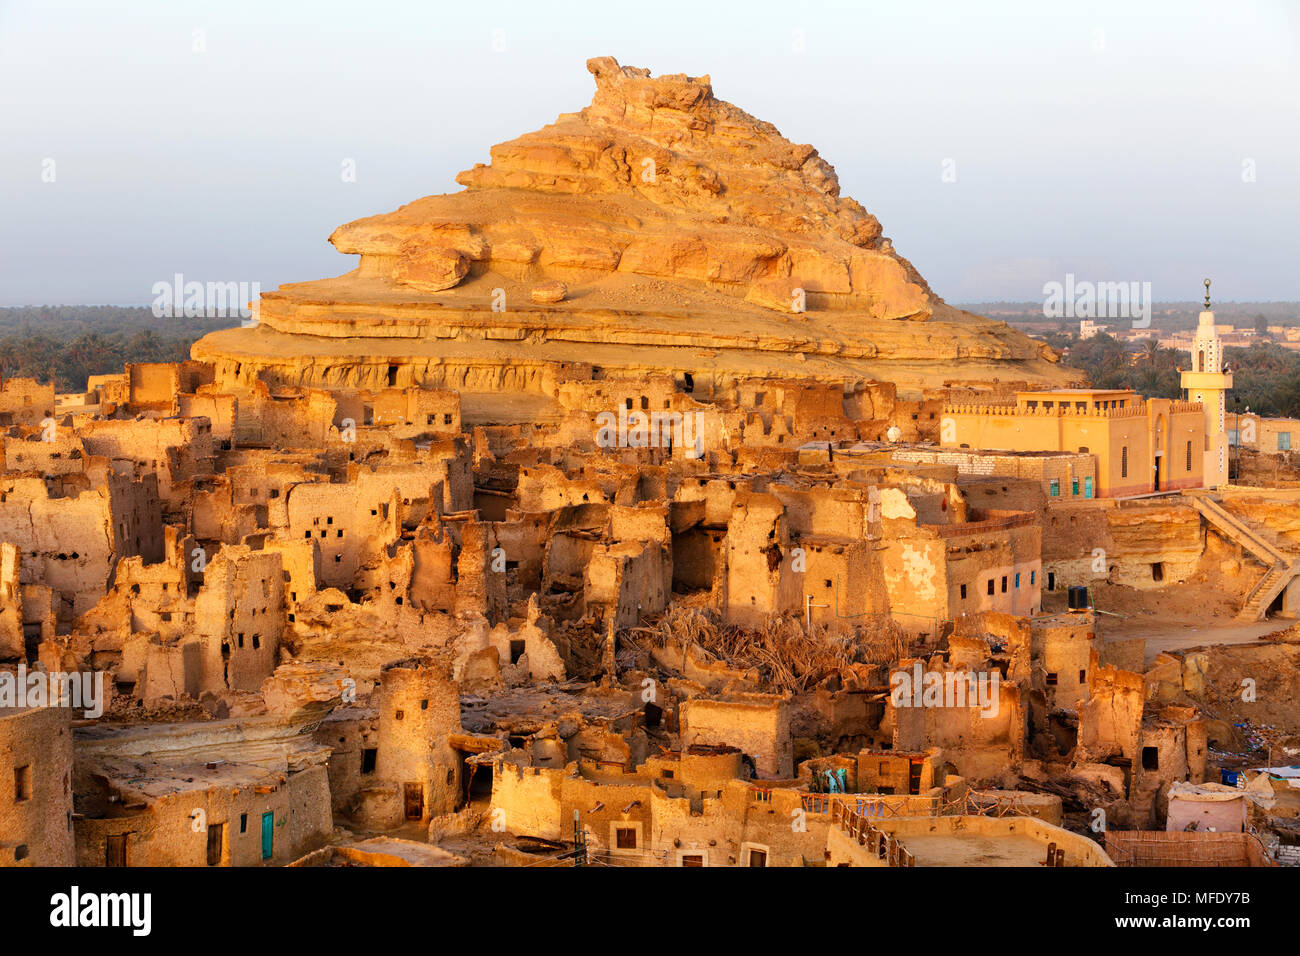 View of the ruins of the Shali fortress in the Siwah oasis in the Sahara desert in Egypt - Stock Image